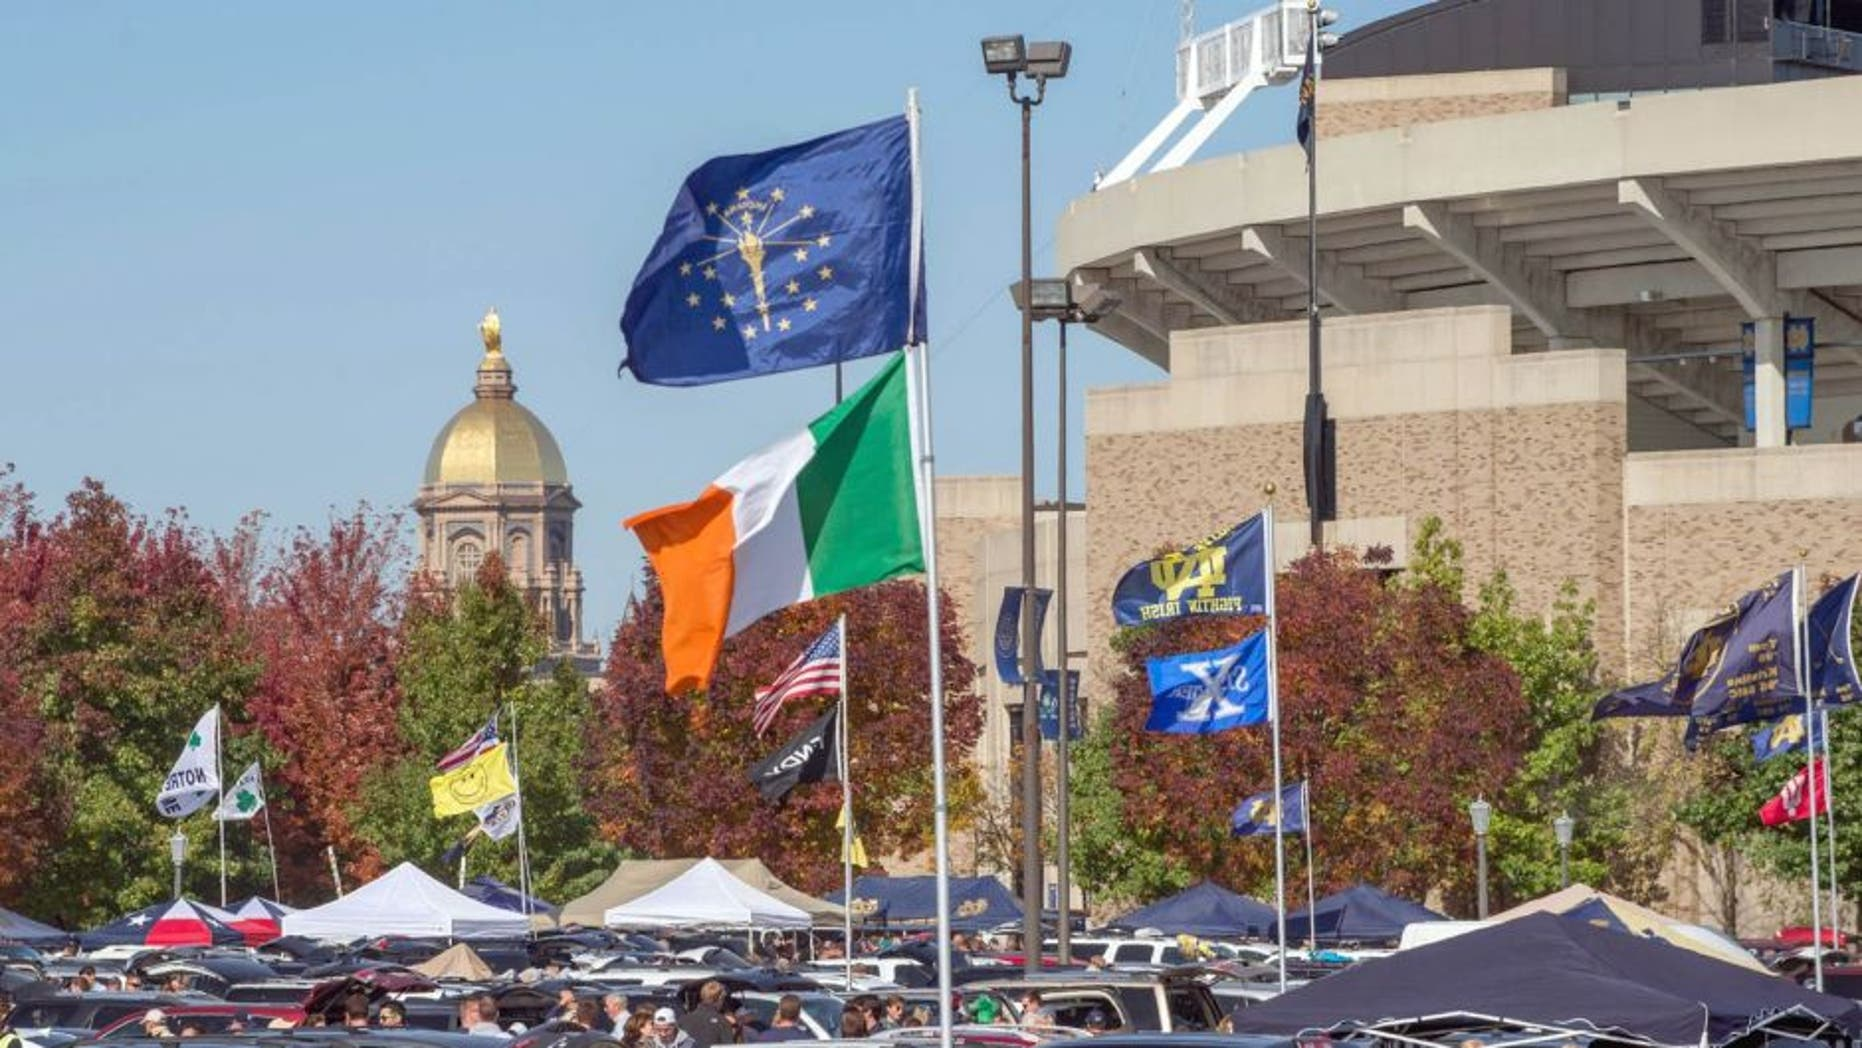 Oct 11, 2014; South Bend, IN, USA; A general view of the golden dome and the stadium at the University of Notre Dame before the game between the Notre Dame Fighting Irish and the North Carolina Tar Heels at Notre Dame Stadium. Mandatory Credit: Matt Cashore-USA TODAY Sports